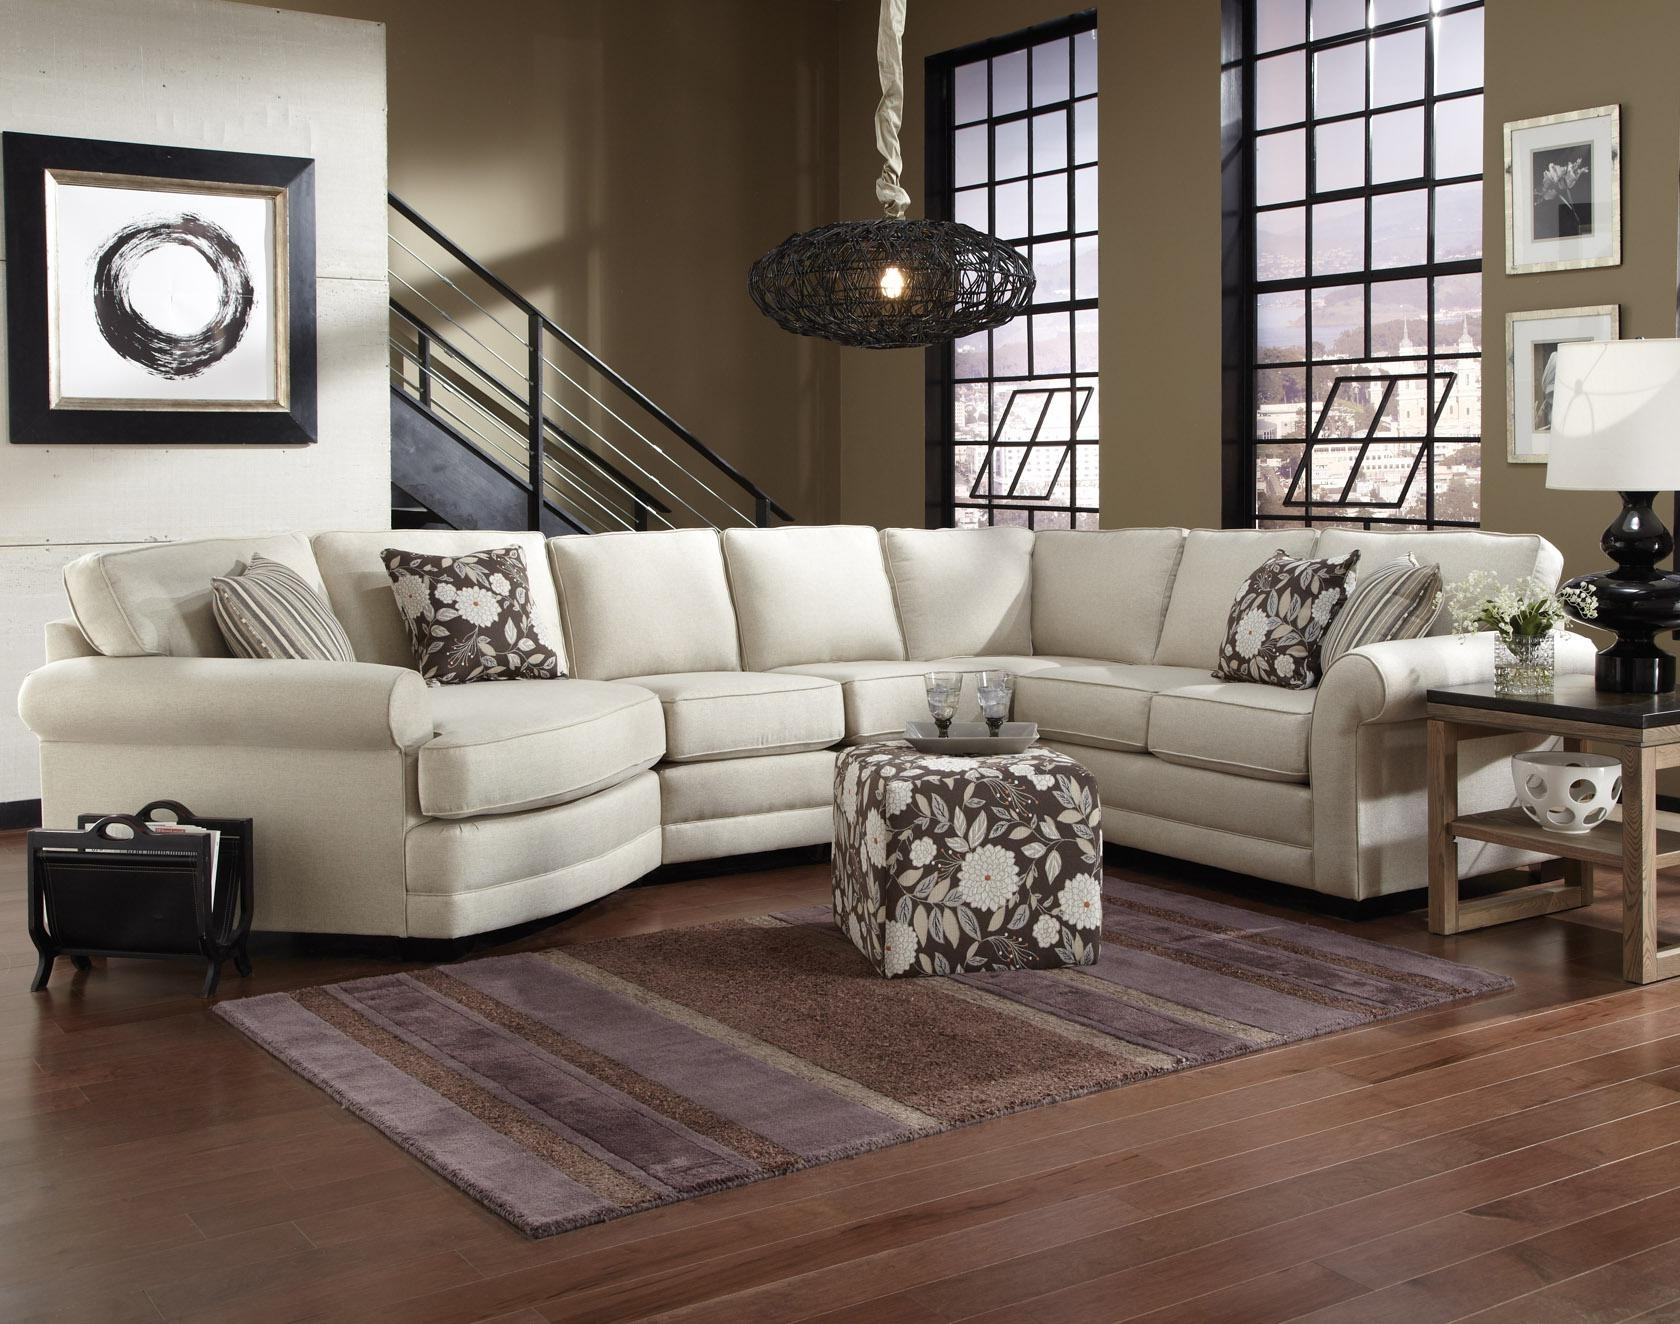 Most Recent England Brantley 5 Seat Sectional Sofa With Cuddler – Ahfa – Sofa With Clarksville Tn Sectional Sofas (View 15 of 15)